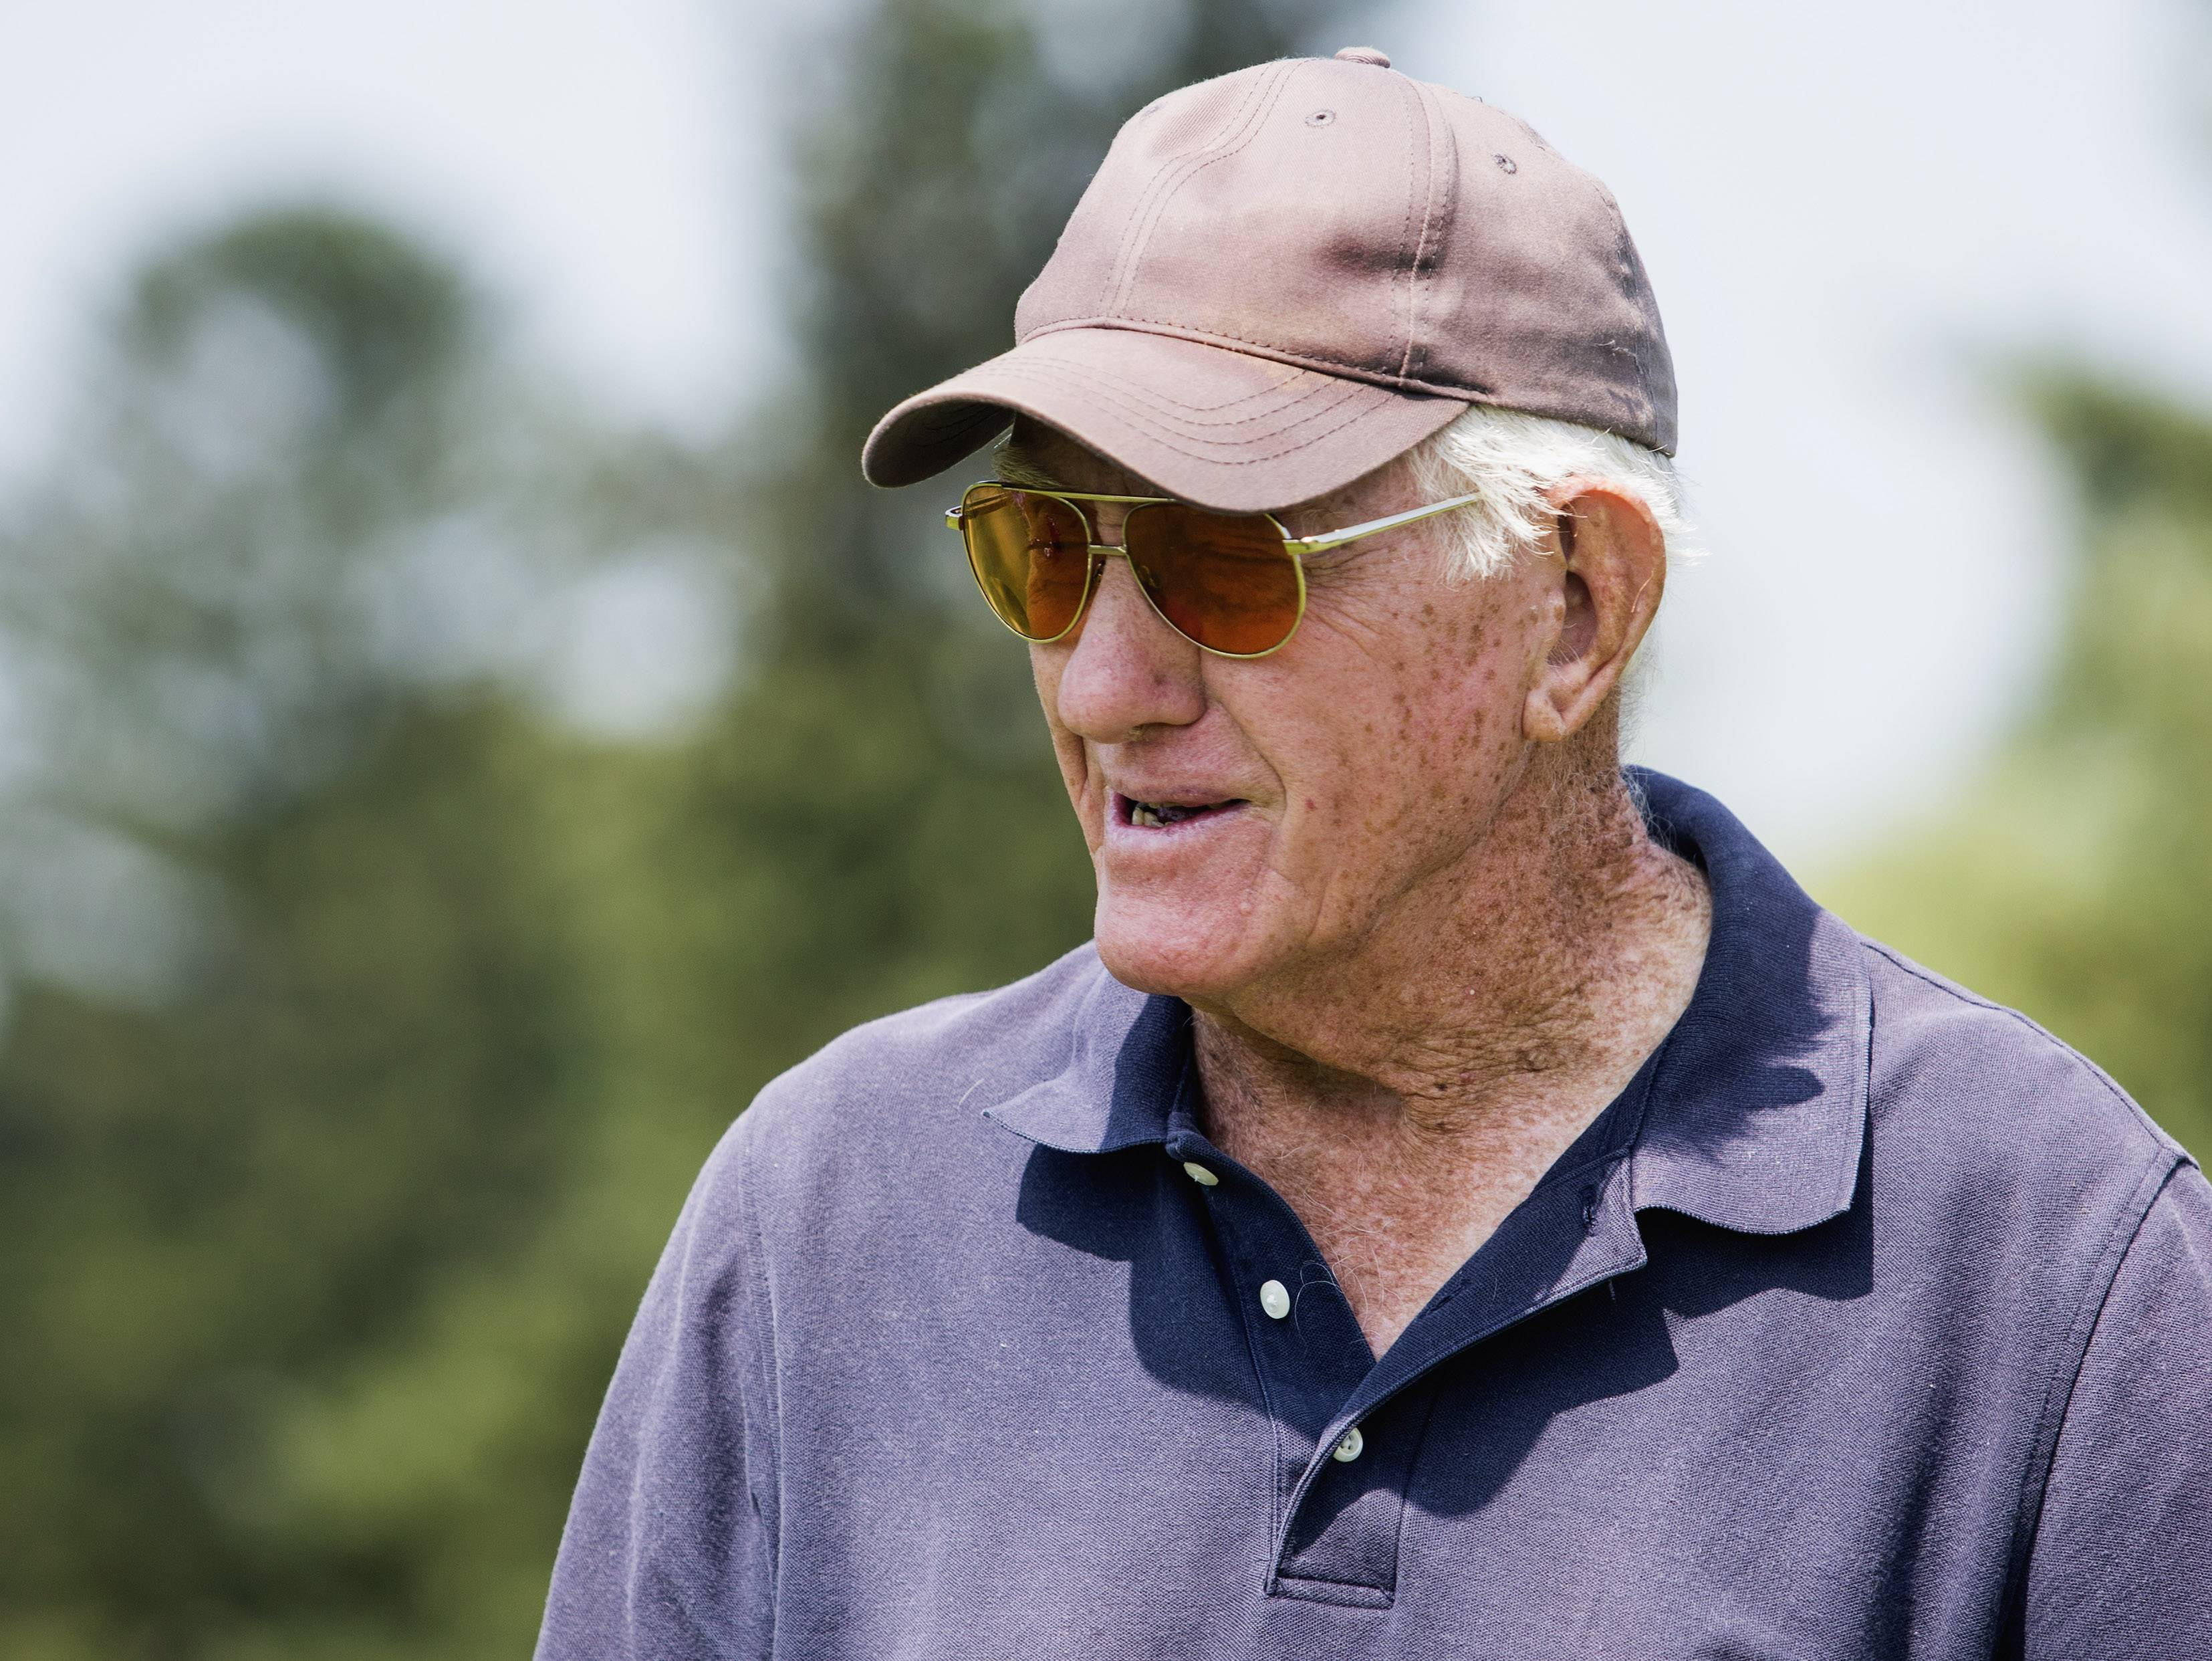 Lowell Parrish, 82, talks to other players before teeing off on the second hole at Elliot Golf Course in Rockford,